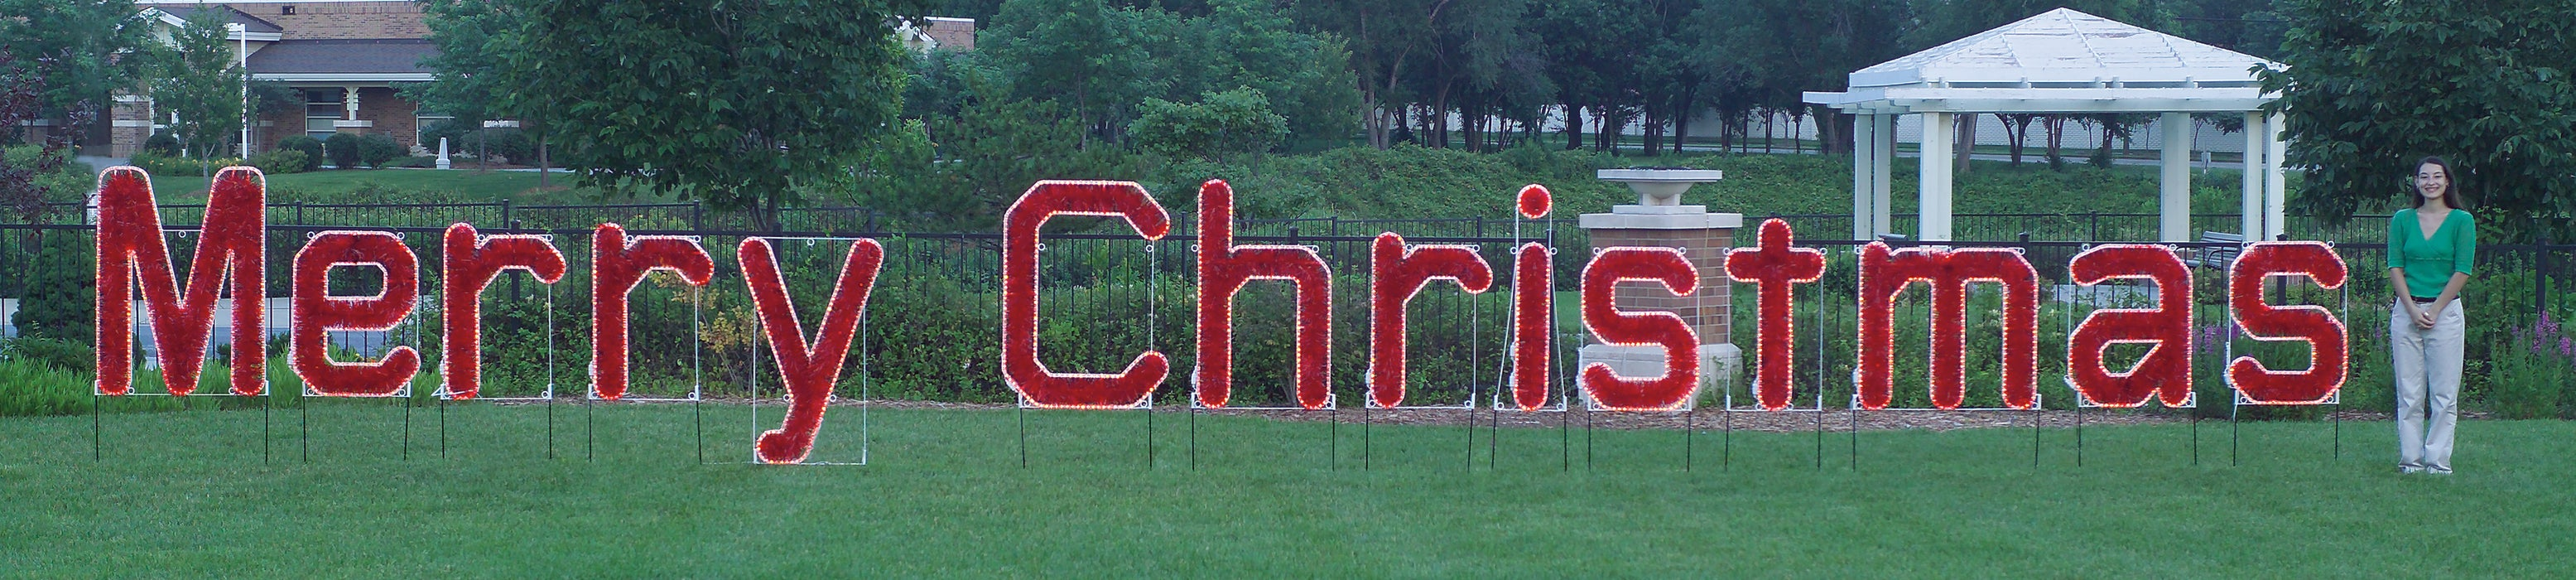 Large Merry Christmas in Red LED Lights and Garland, lighted outdoor motif, Holiday, traditional yard motifs